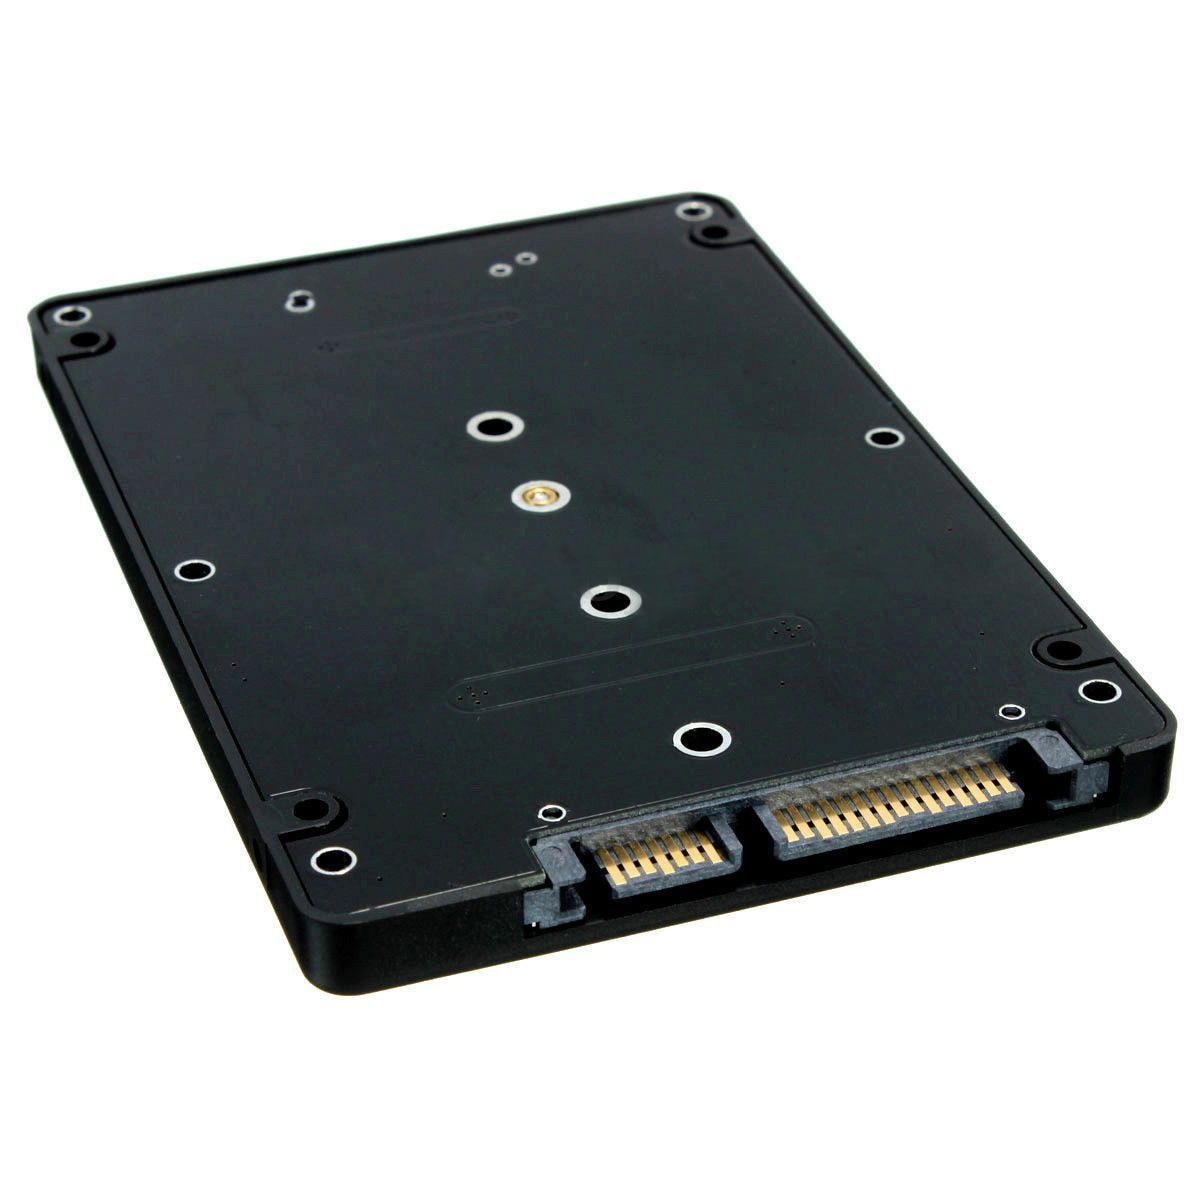 Converter from M2 to SSD of 2.5 inch SATA- Adapter Card 8mm